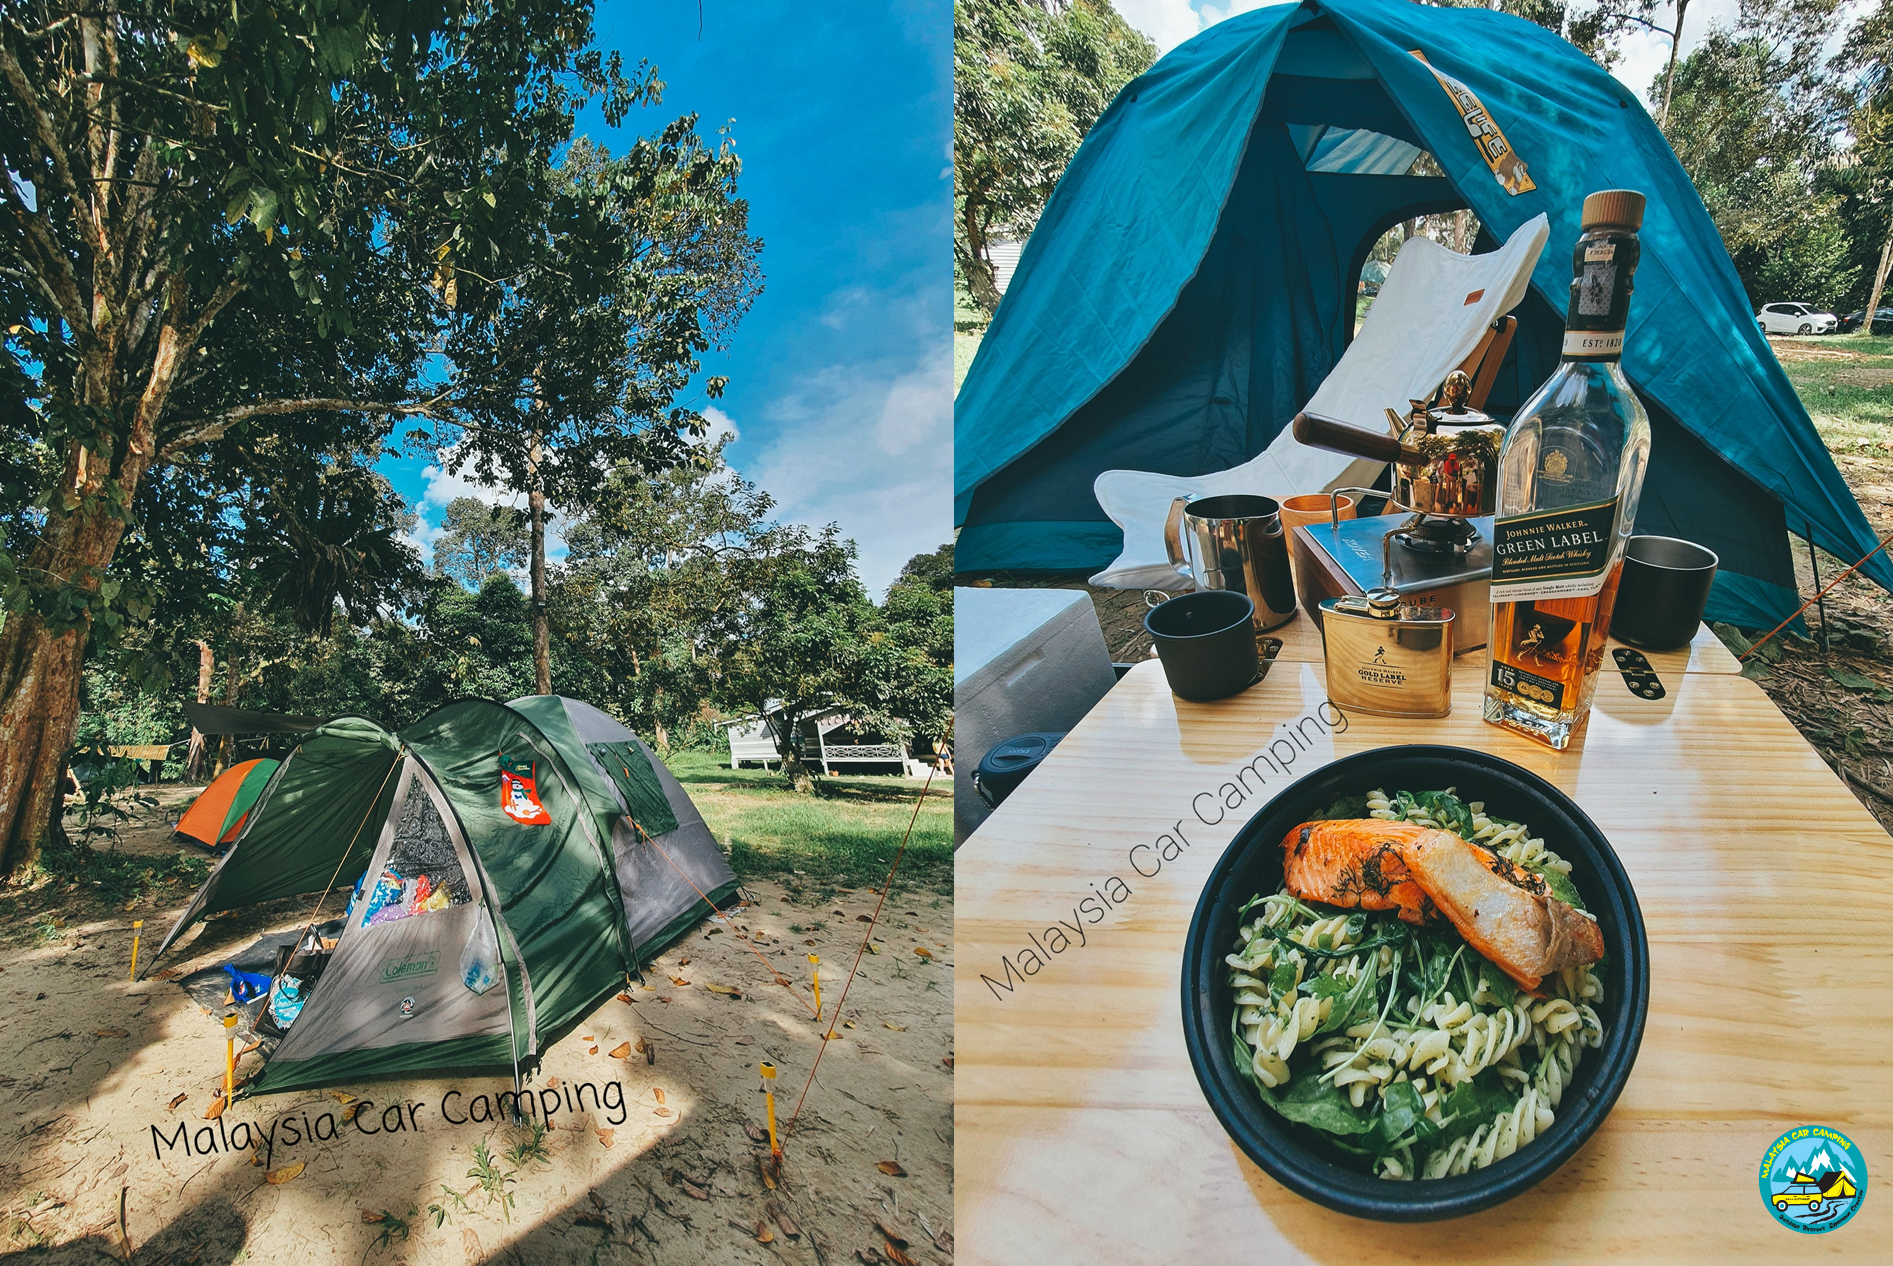 christmas_car_camping_at_hammock_by_the_river_campsite_malaysia_car_camping_private_event_organizer-19